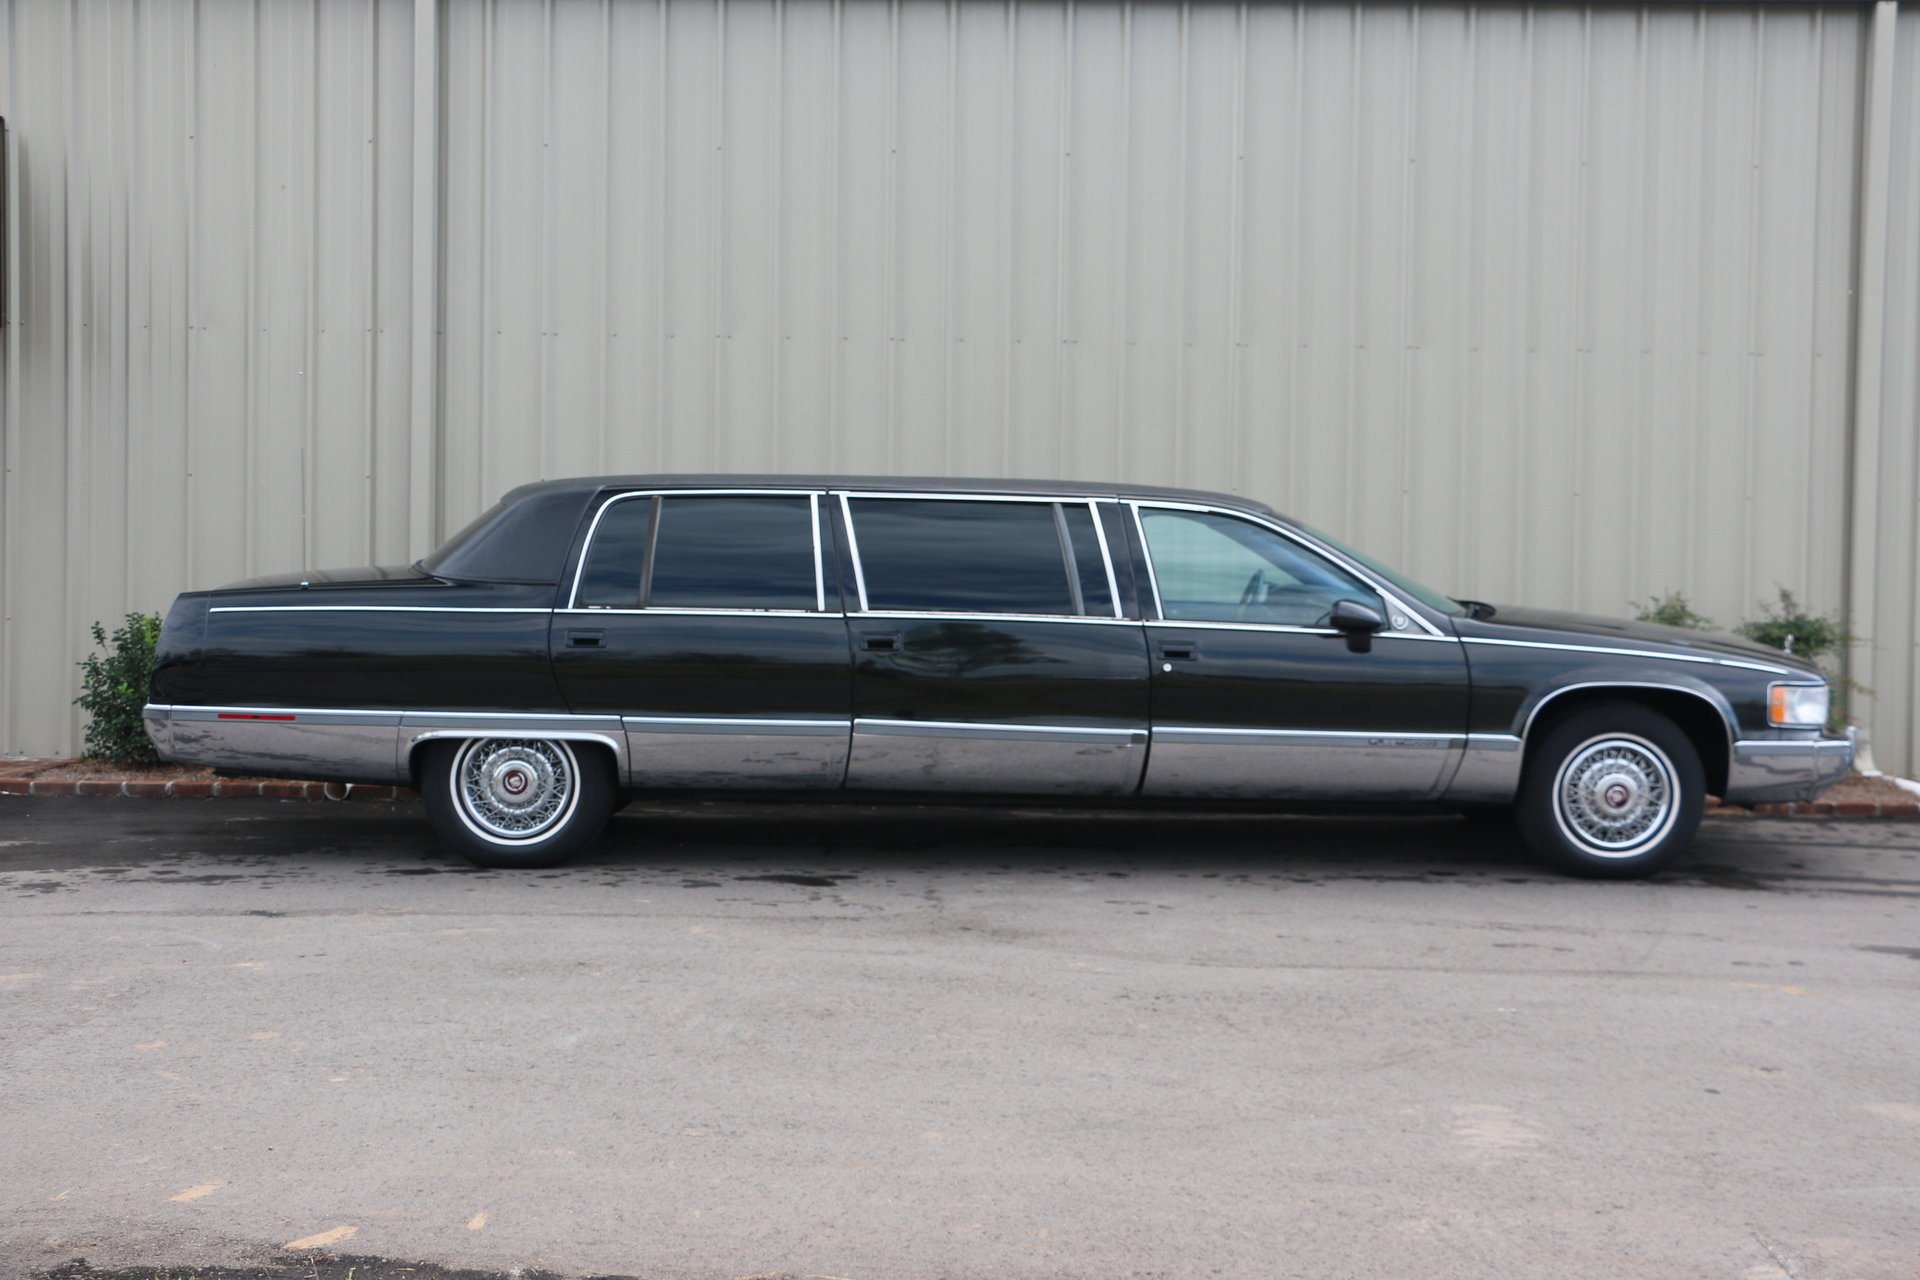 1993 Cadillac Fleetwood Limousine For Sale 75352 Mcg